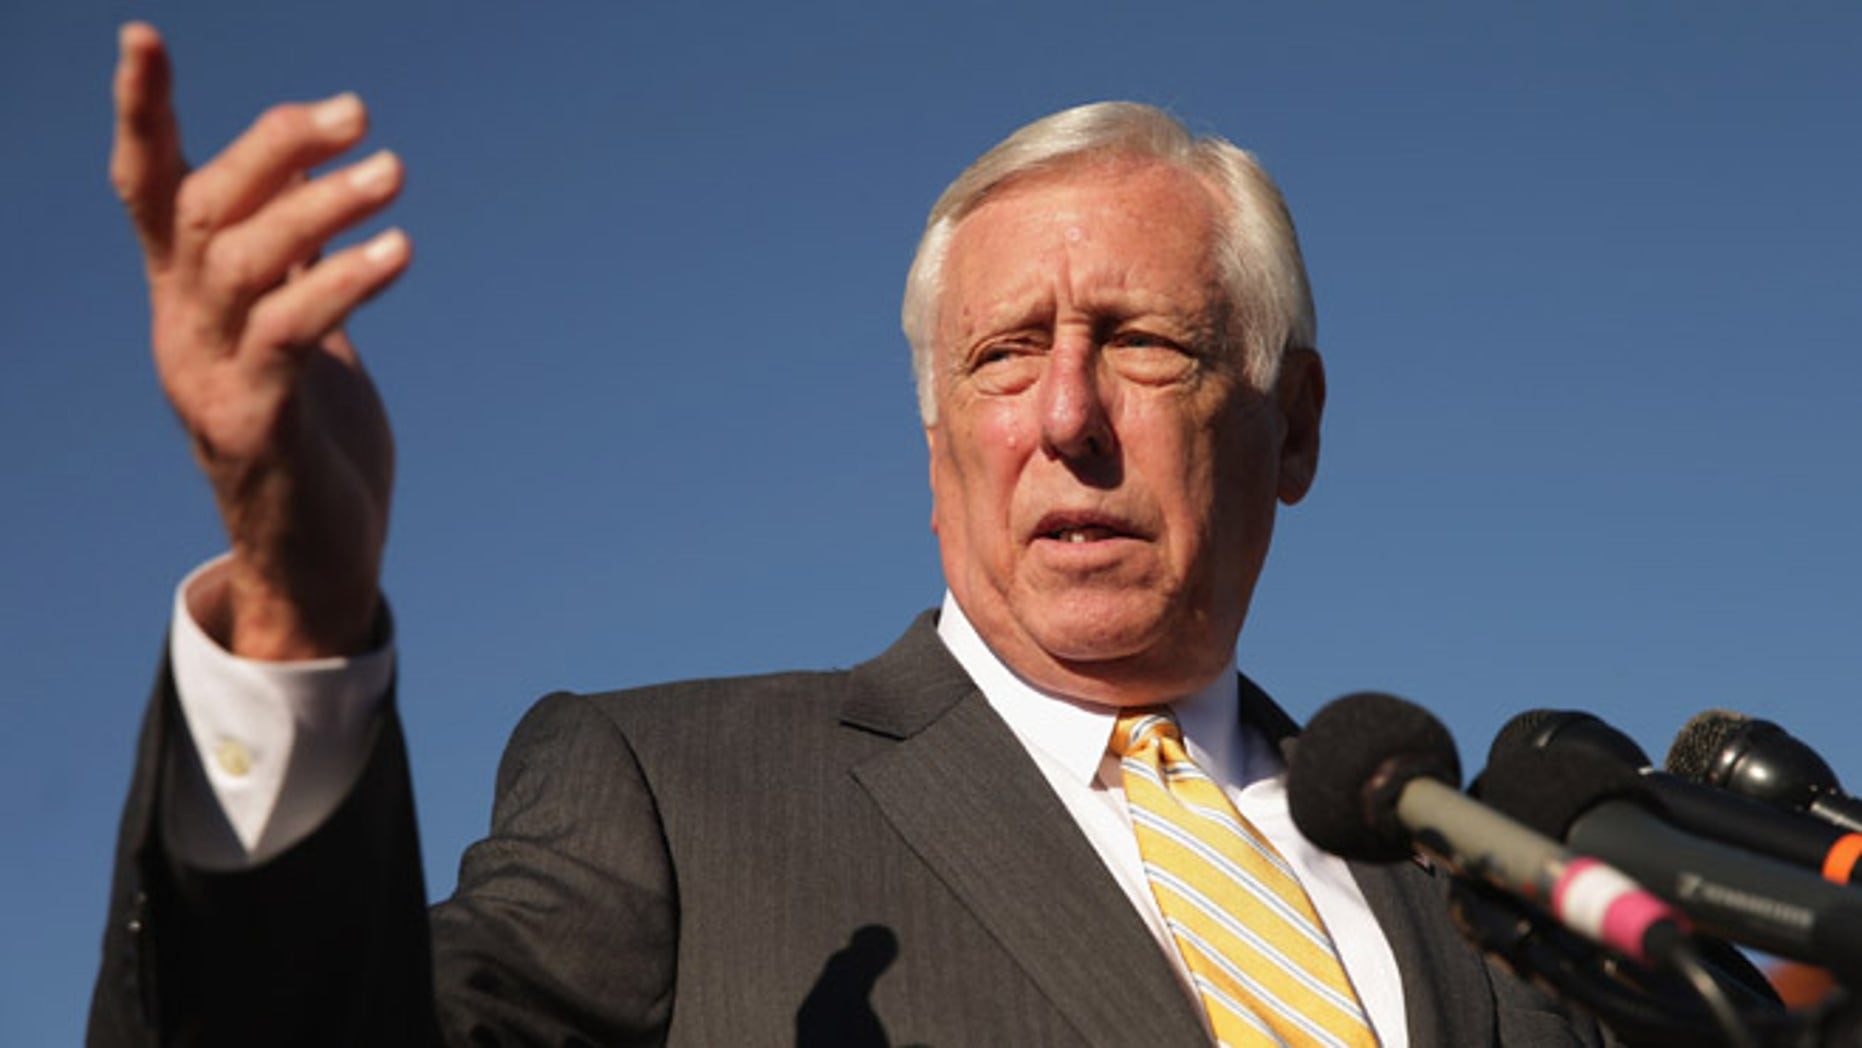 WASHINGTON, DC - NOVEMBER 12:  House Minority Whip Steny Hoyer (D-MD) joins veterans, servicemembers and aspiring recruits to call on Congress and President Barack Obama  to move forward with immigration reform at the U.S. Capitol November 12, 2014 in Washington, DC. The news conference participants called on Obama to 'go bold and go big' and to use his executive authority to reform immigratoin if Congress could not get the job done.  (Photo by Chip Somodevilla/Getty Images)